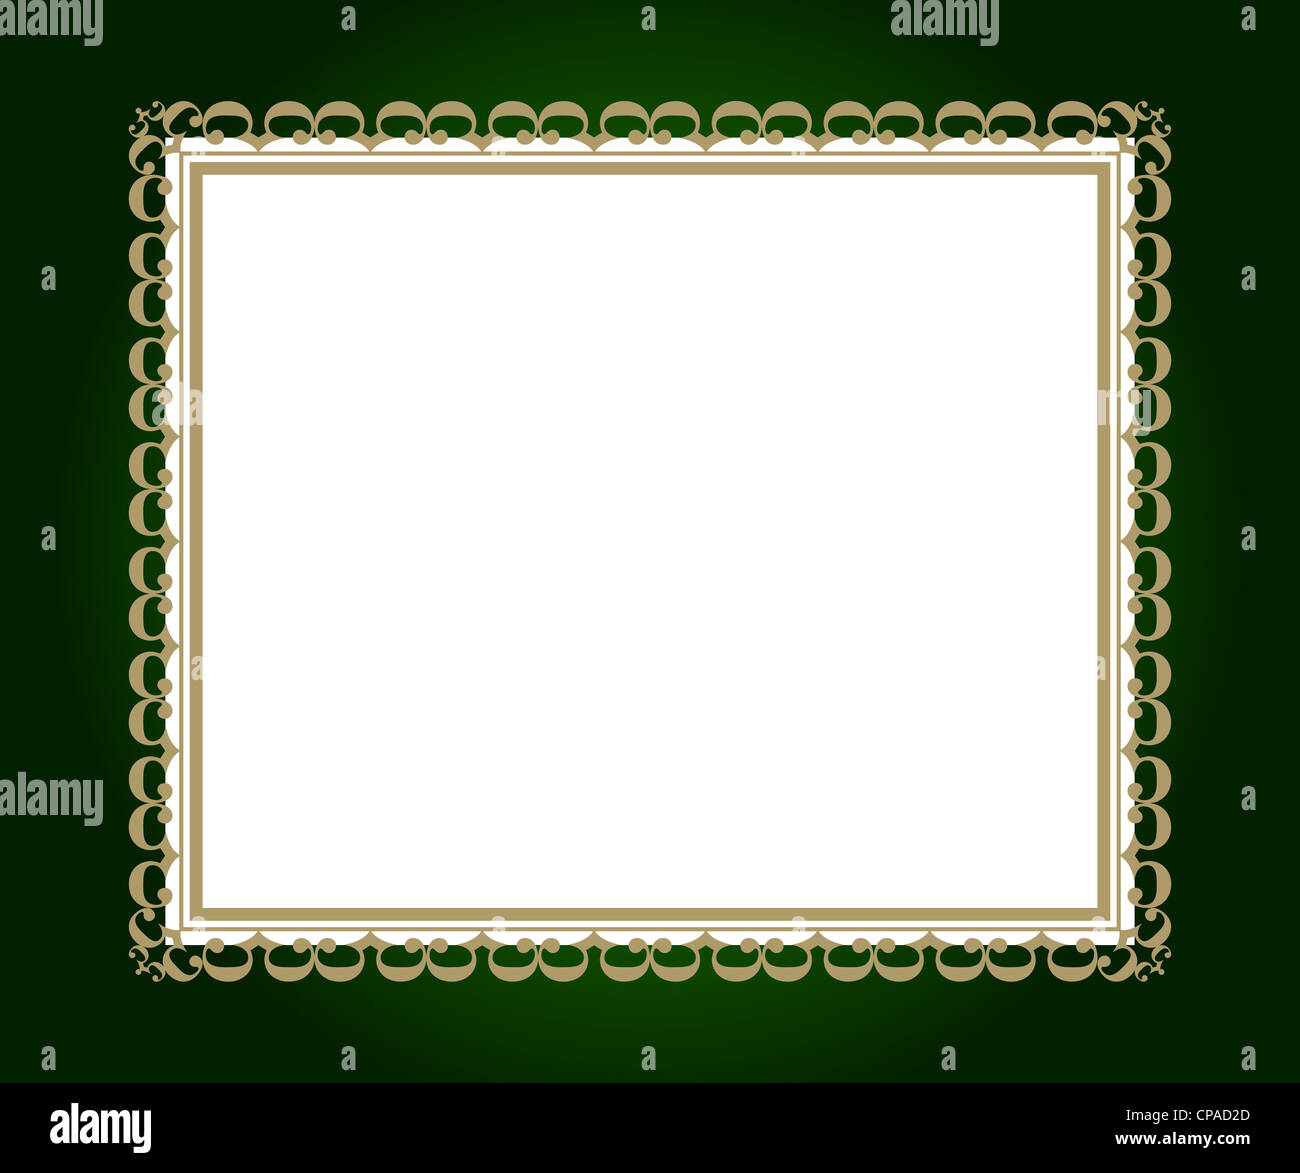 gold frame border stockfotos gold frame border bilder alamy. Black Bedroom Furniture Sets. Home Design Ideas